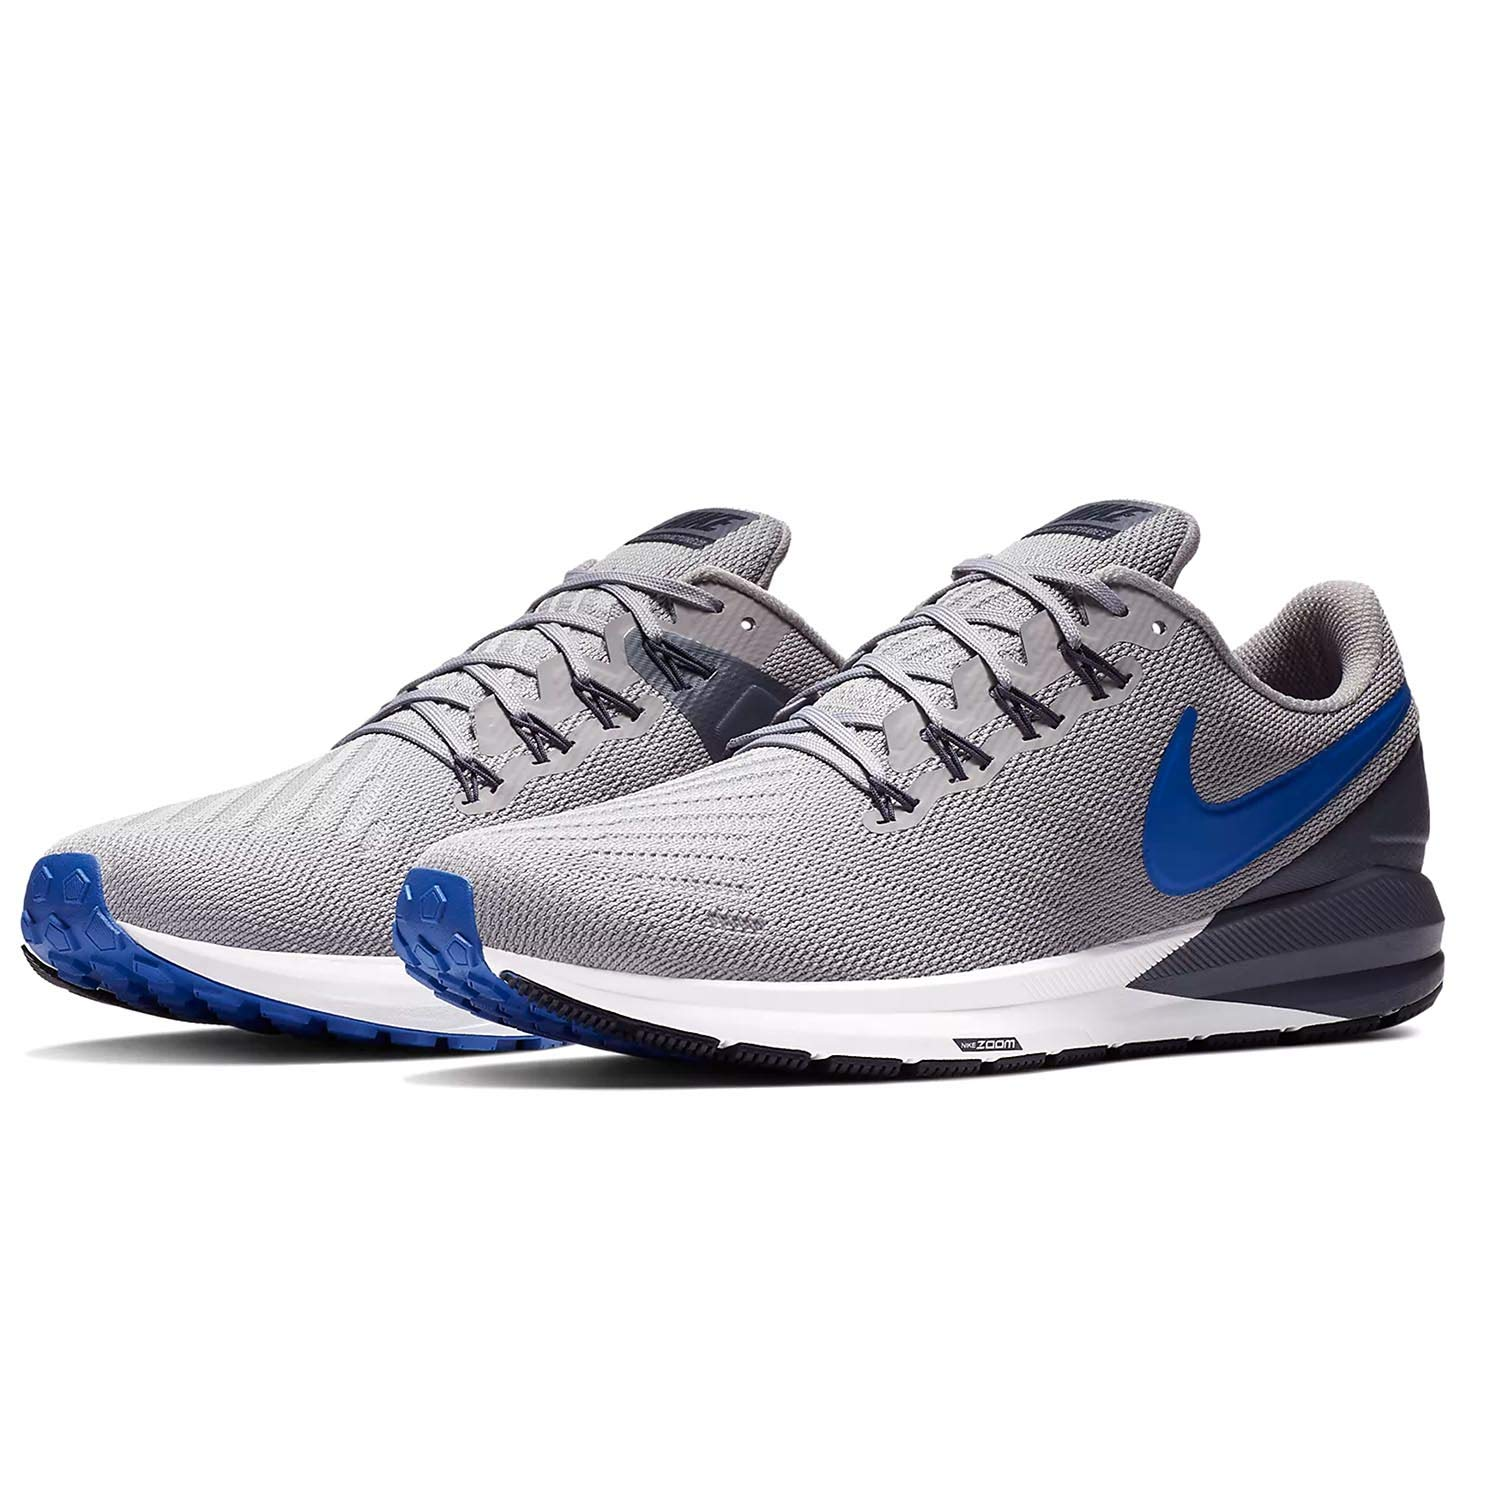 MultiCouleure (Atmosphere gris Hyper Royal Light Carbon 003) Nike Air Zoom Structure 22, Chaussures de Running Compétition Homme 38.5 EU